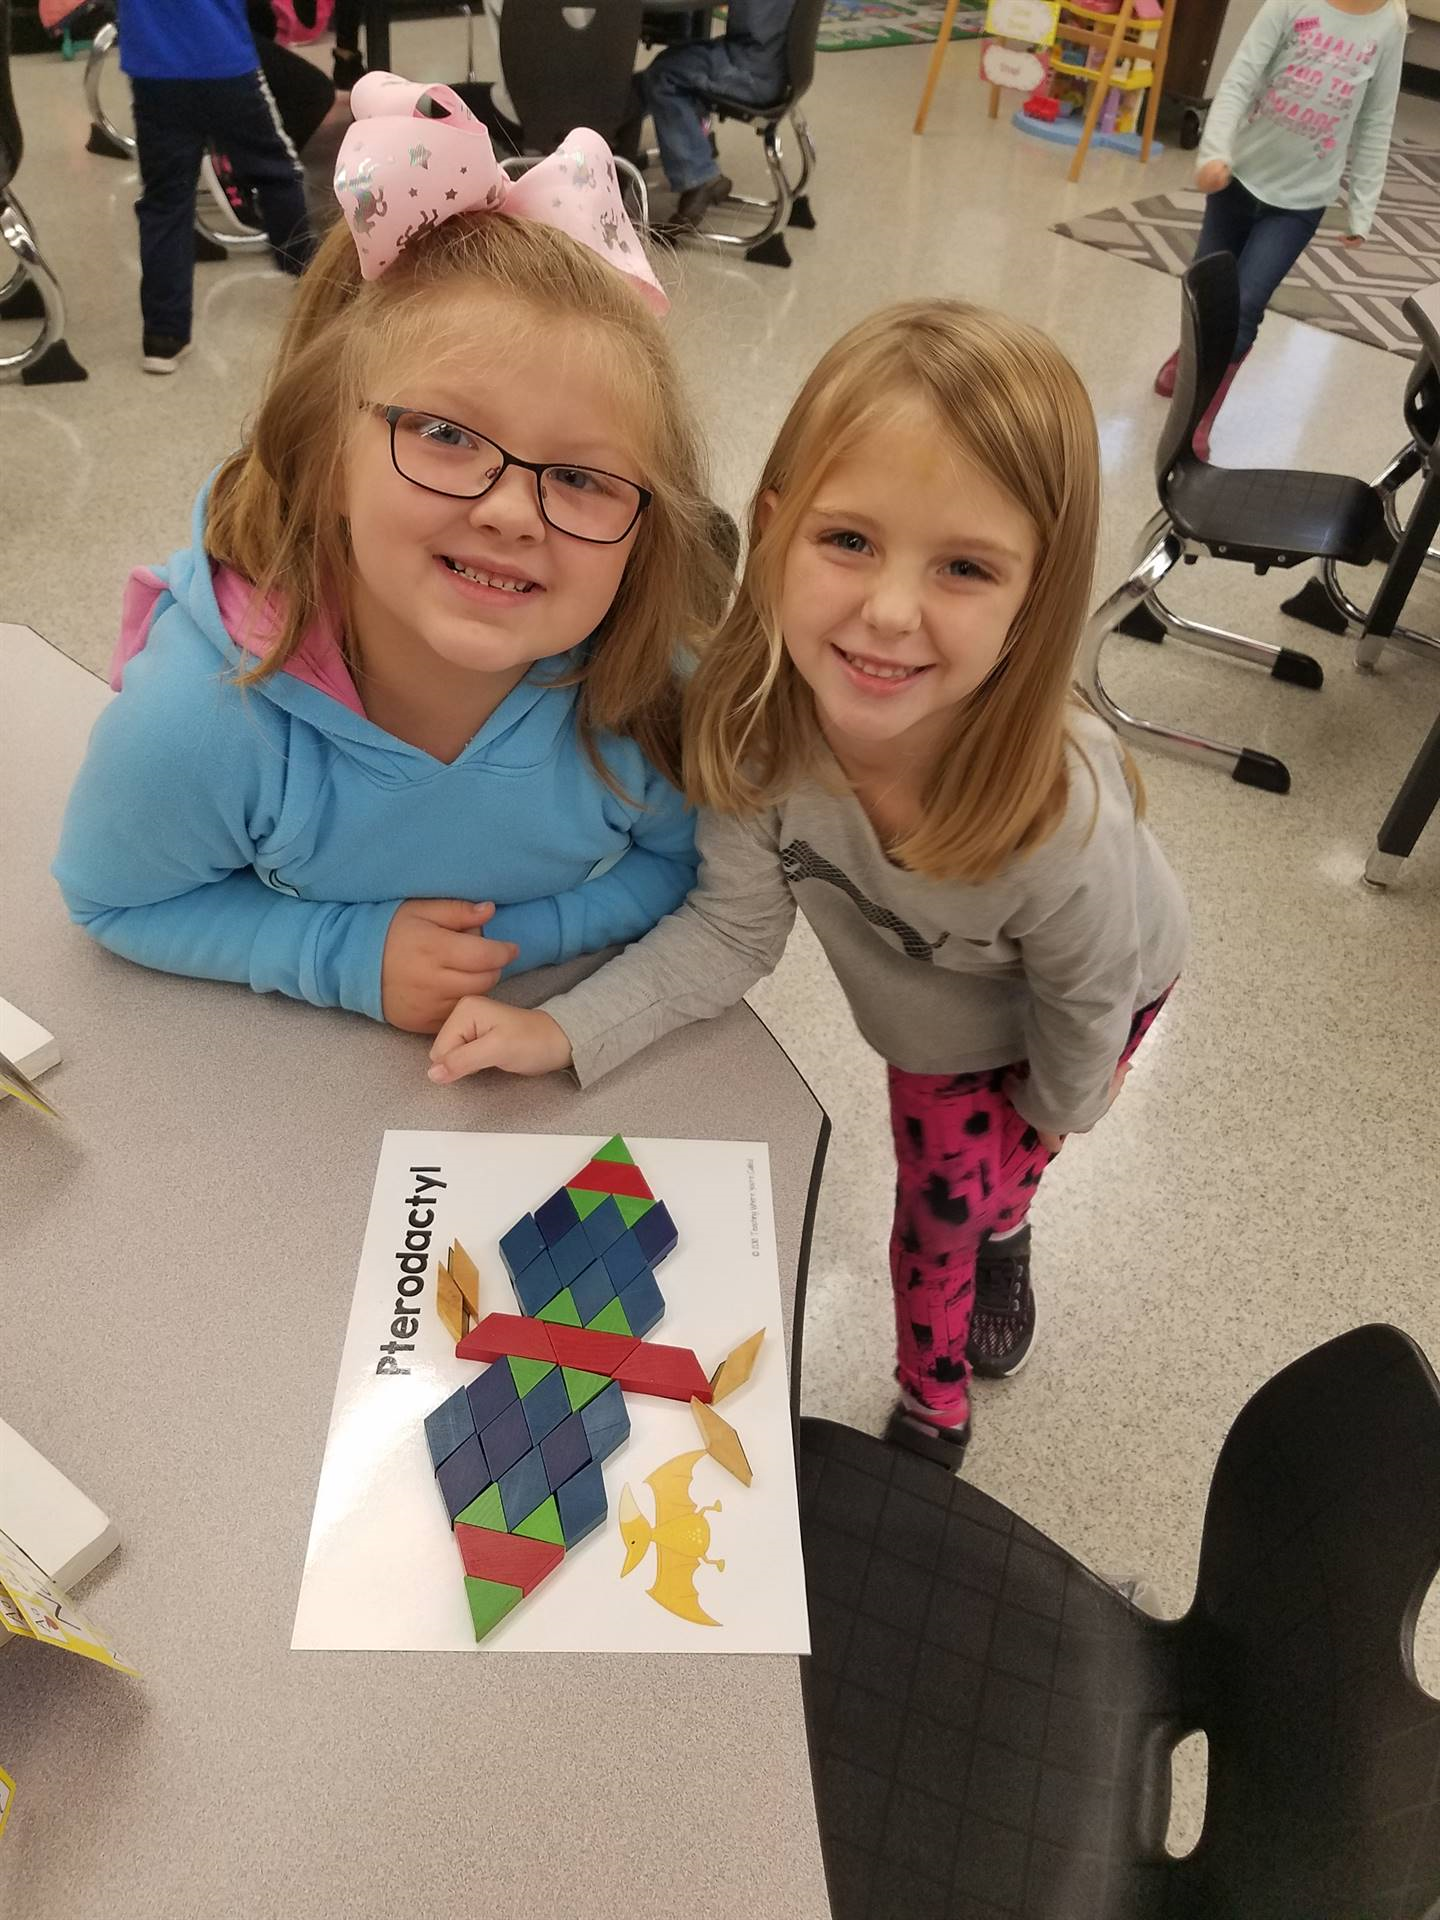 two girls working on puzzles